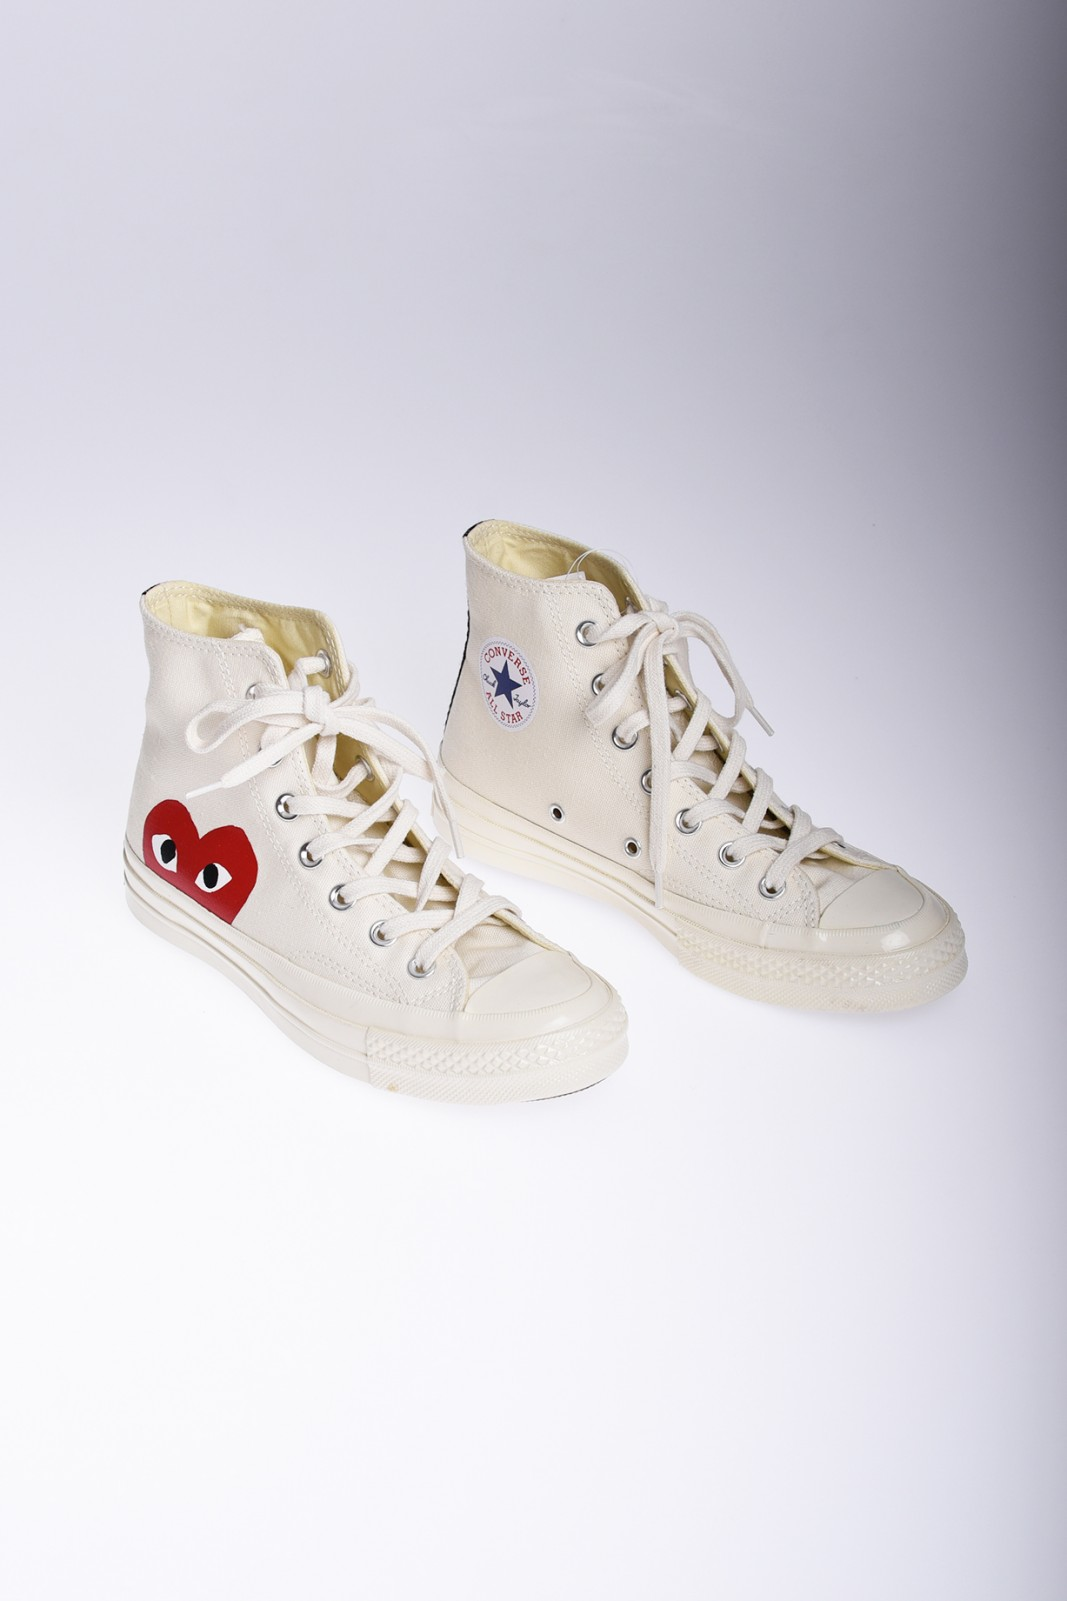 COMME DES GARÇONS Play Converse Chuck Taylor All Star high white sneakers